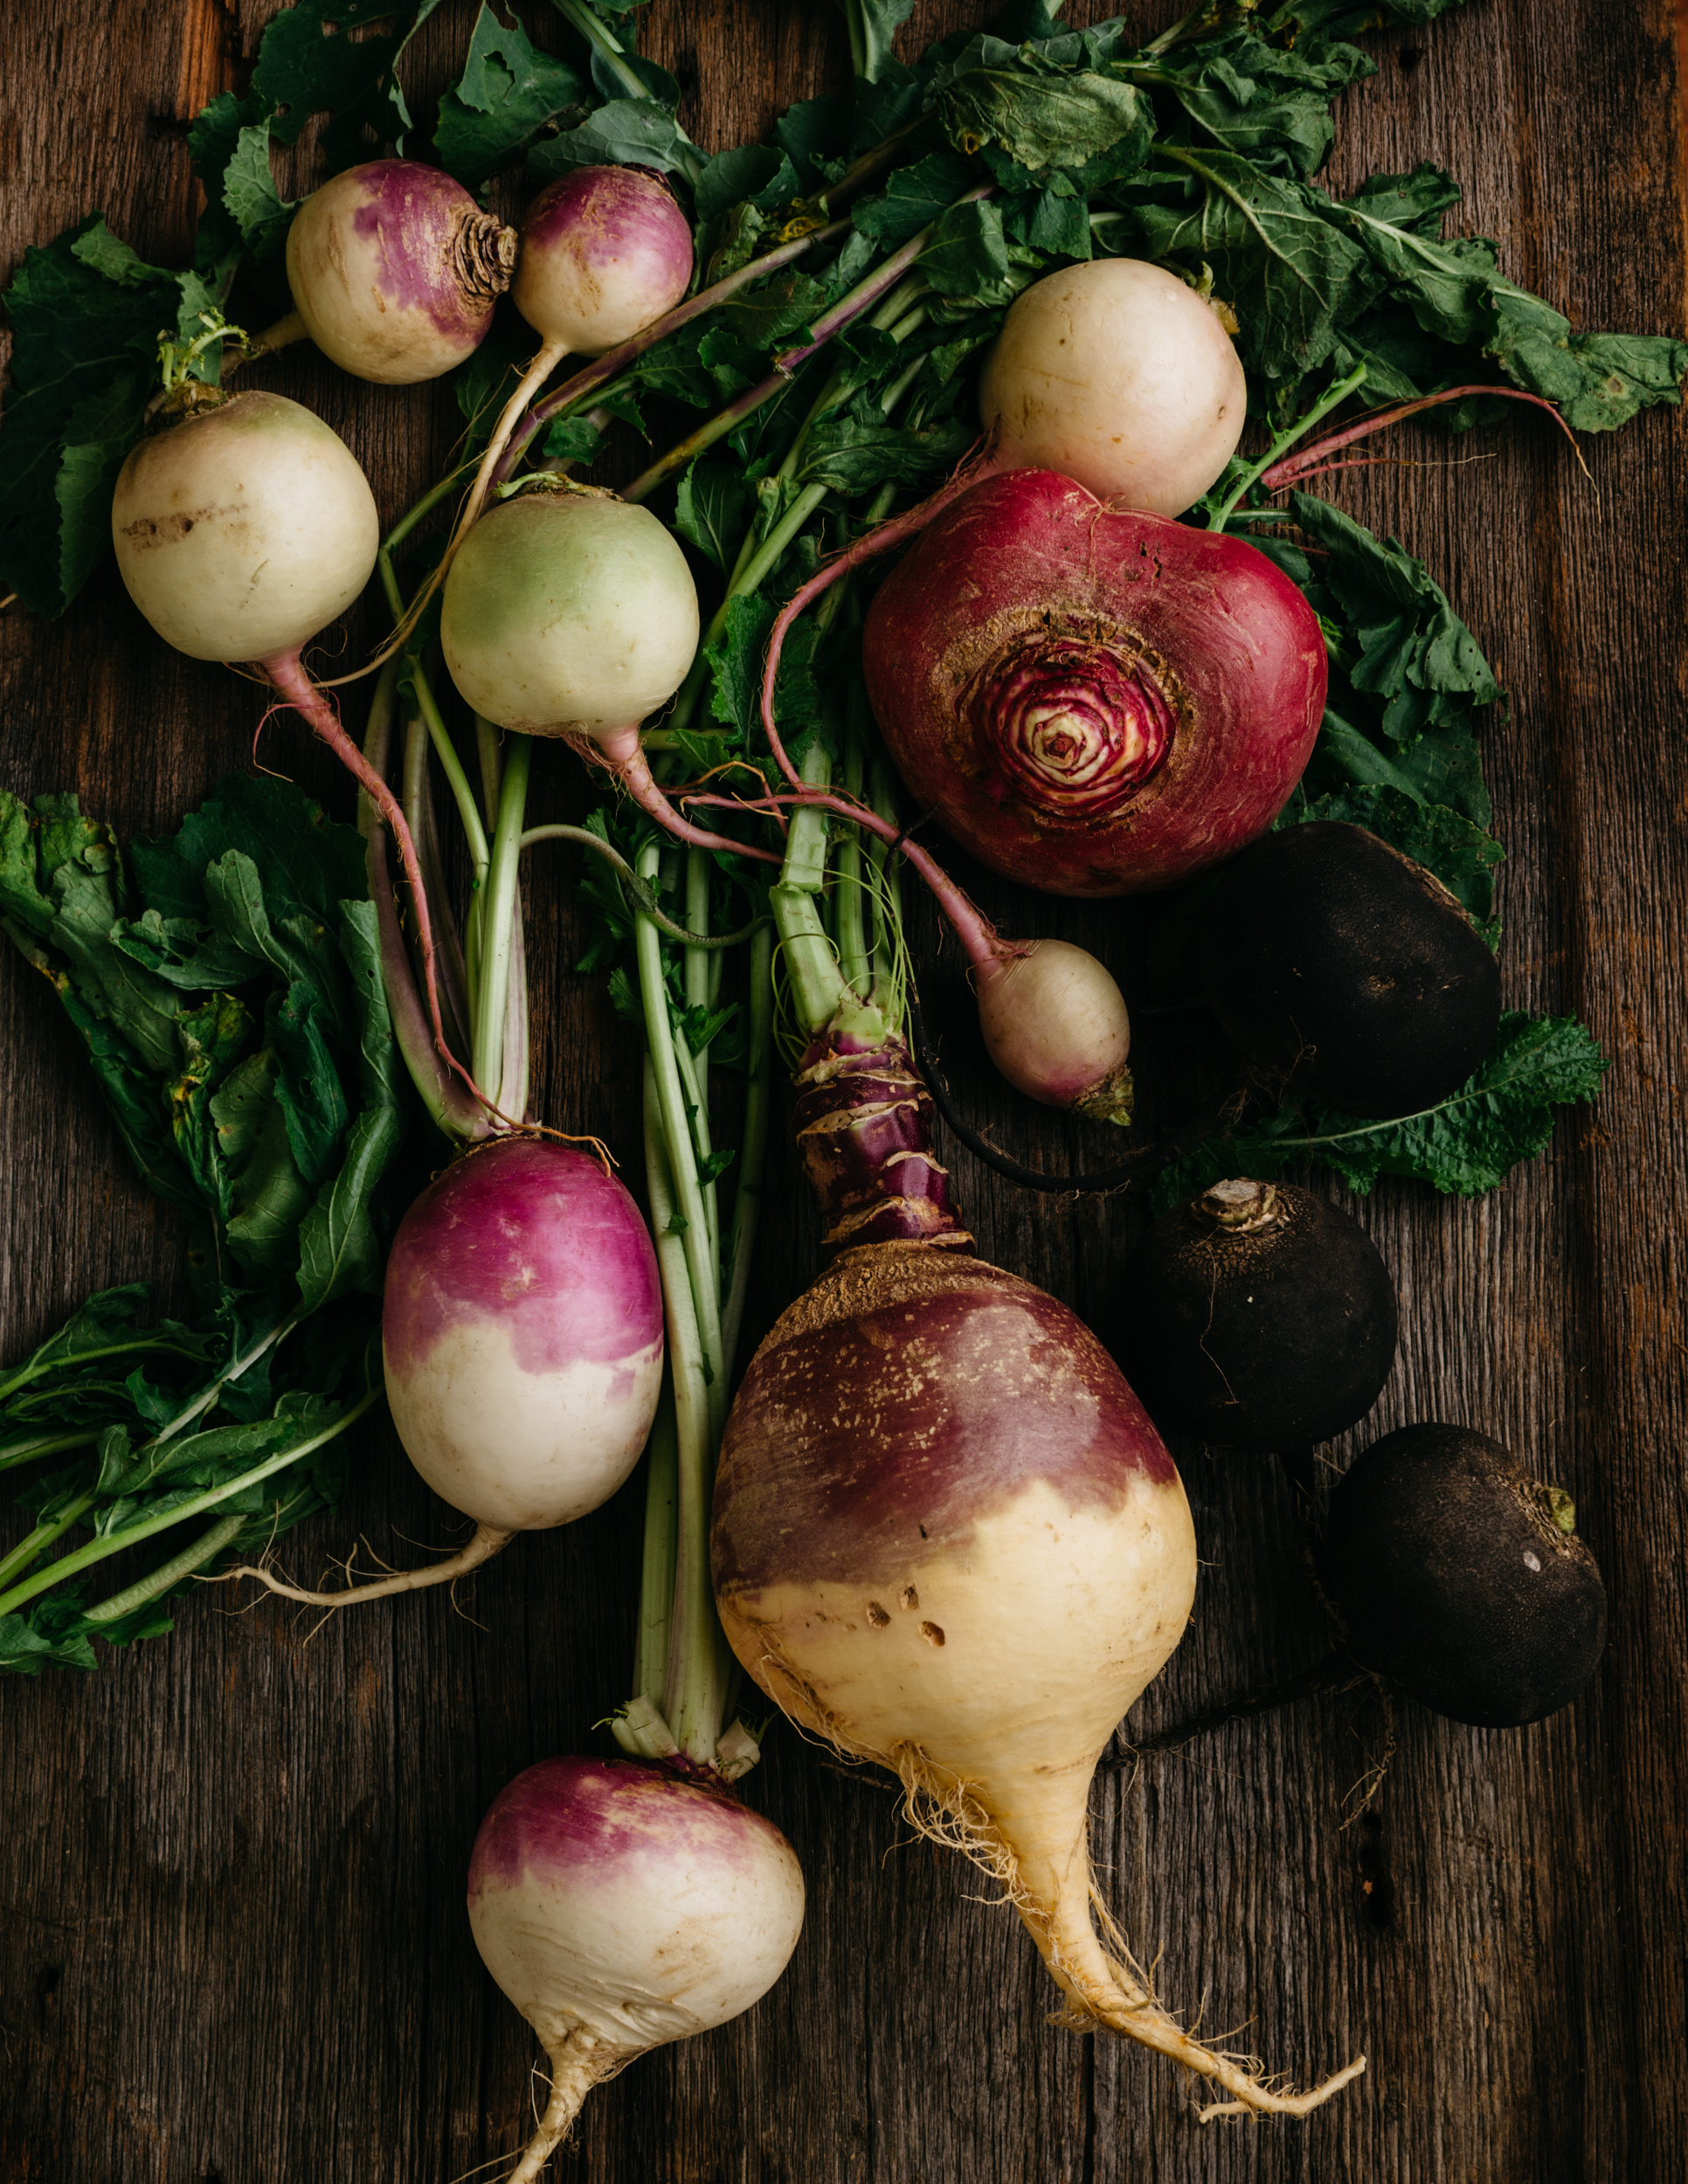 Planting turnips and radishes in 2018